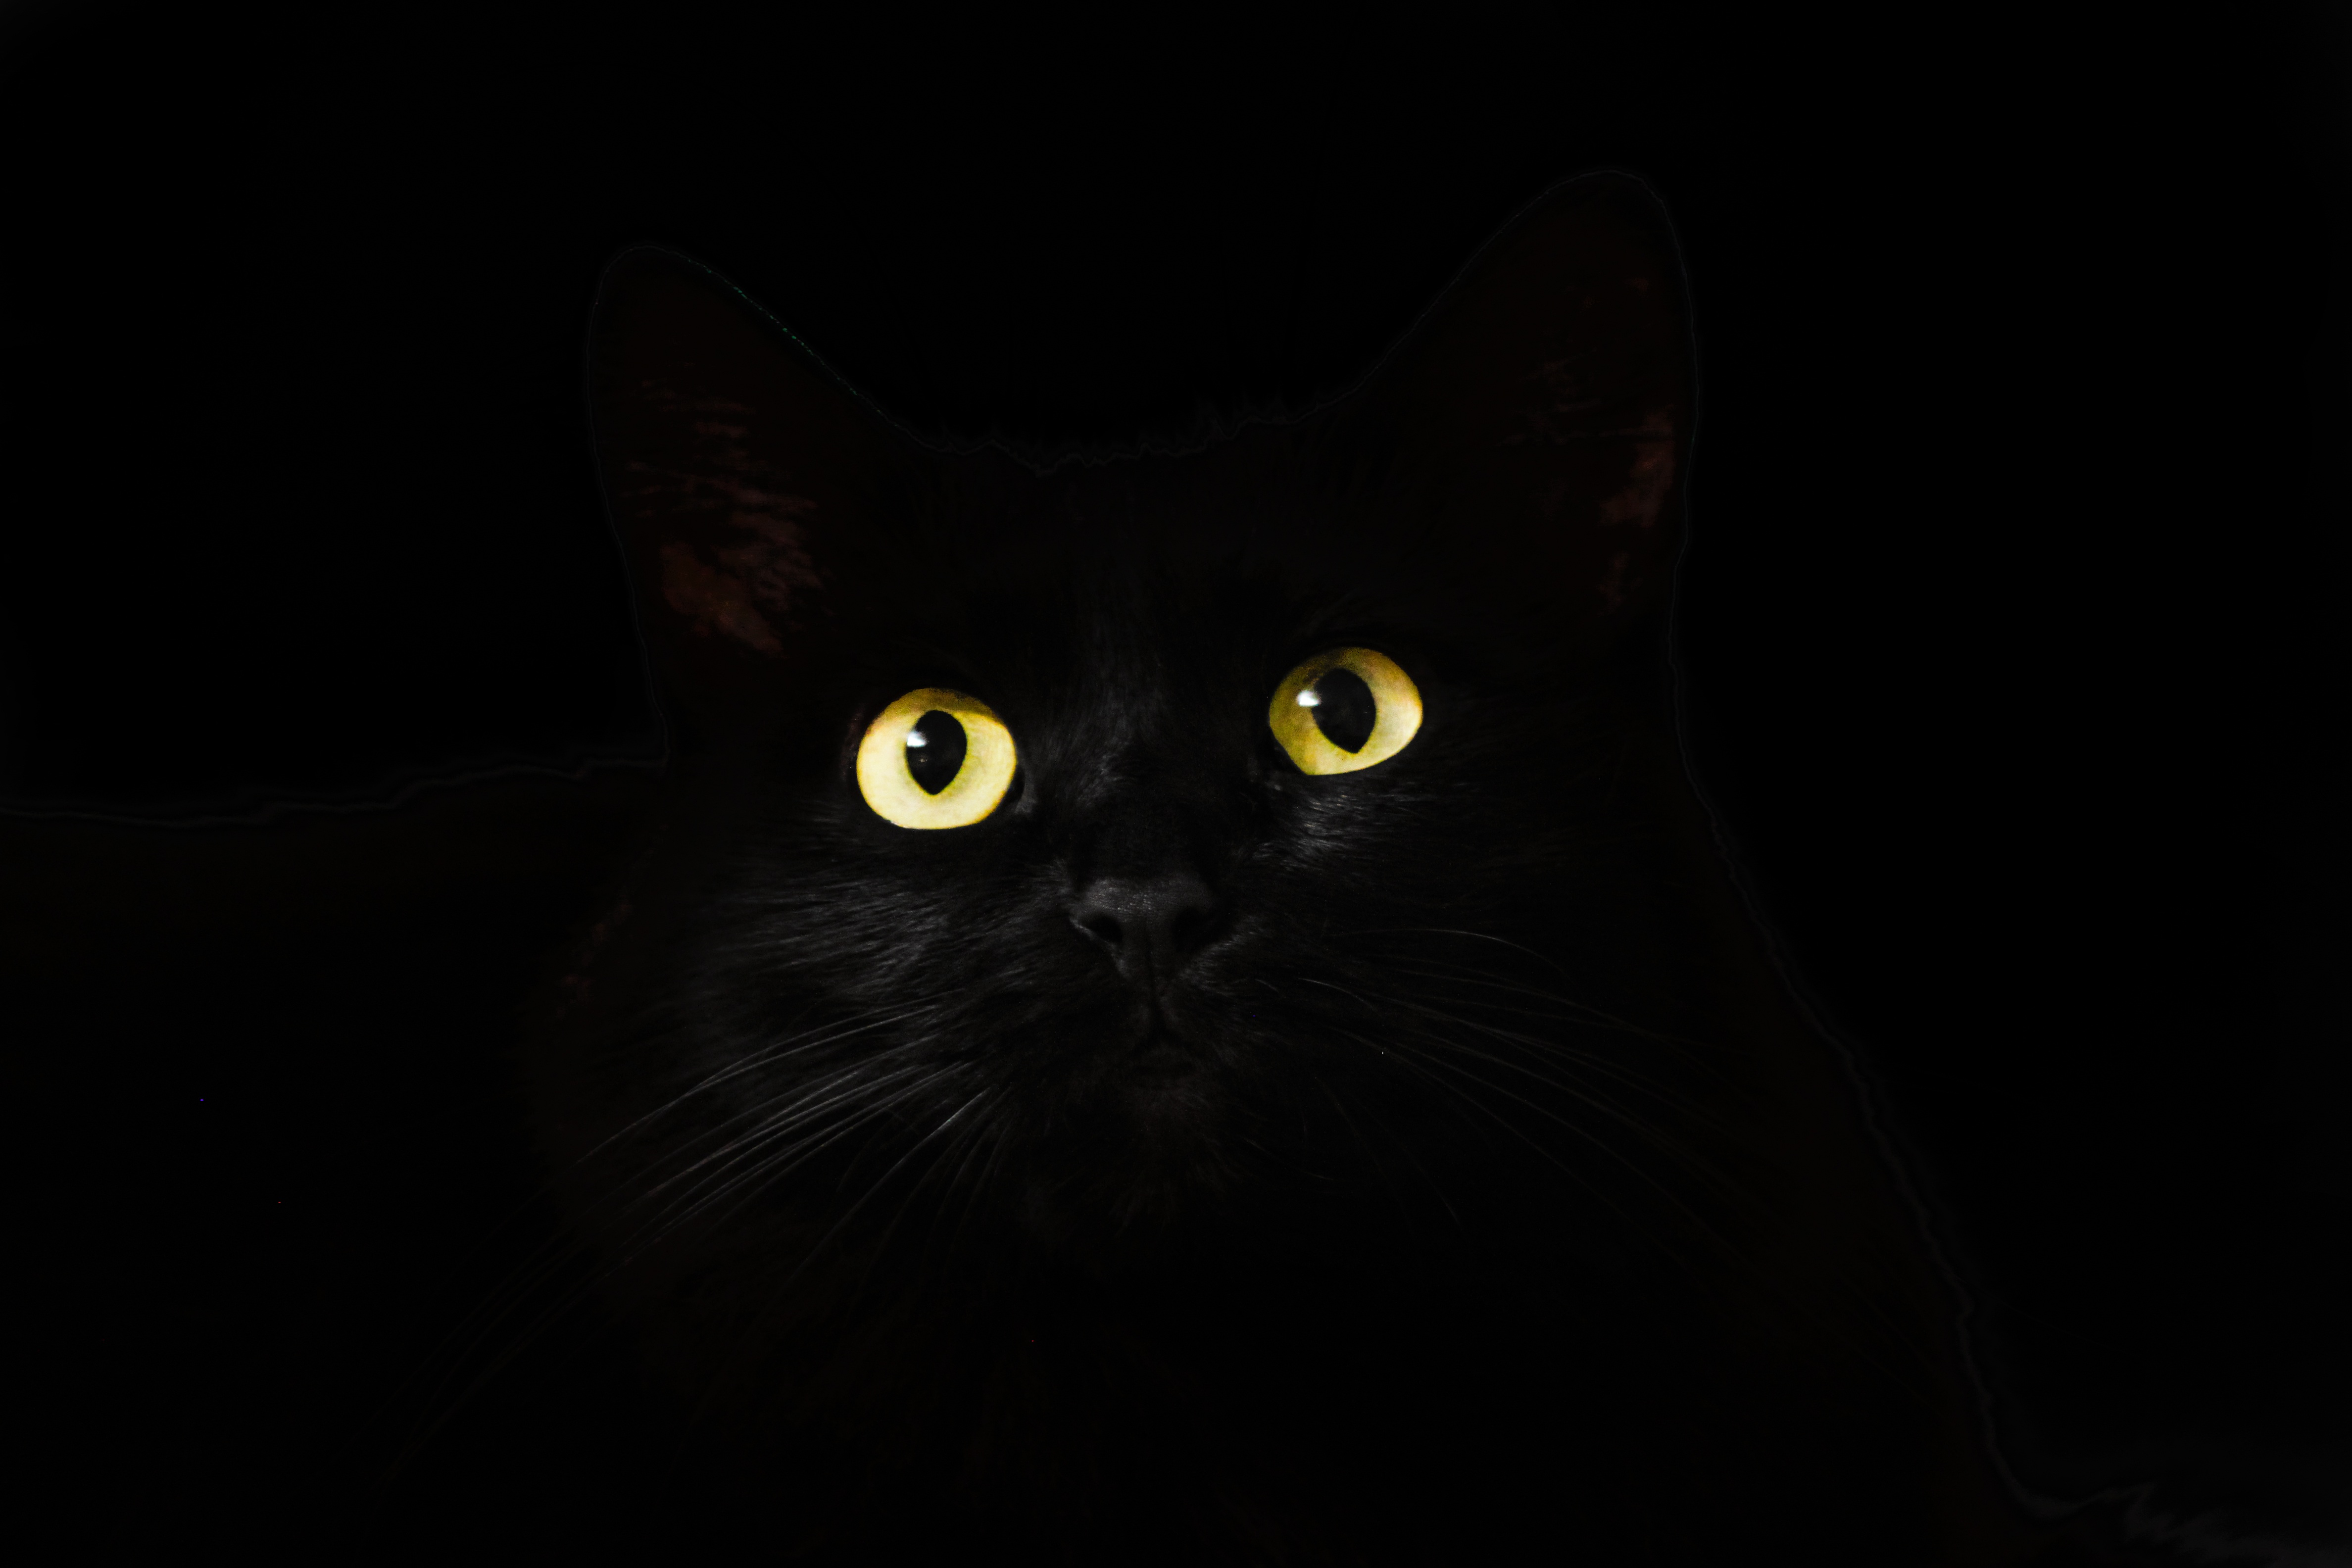 Black Cat Eyes Wallpaper: Black Cat Eyes Dark 5k, HD Animals, 4k Wallpapers, Images